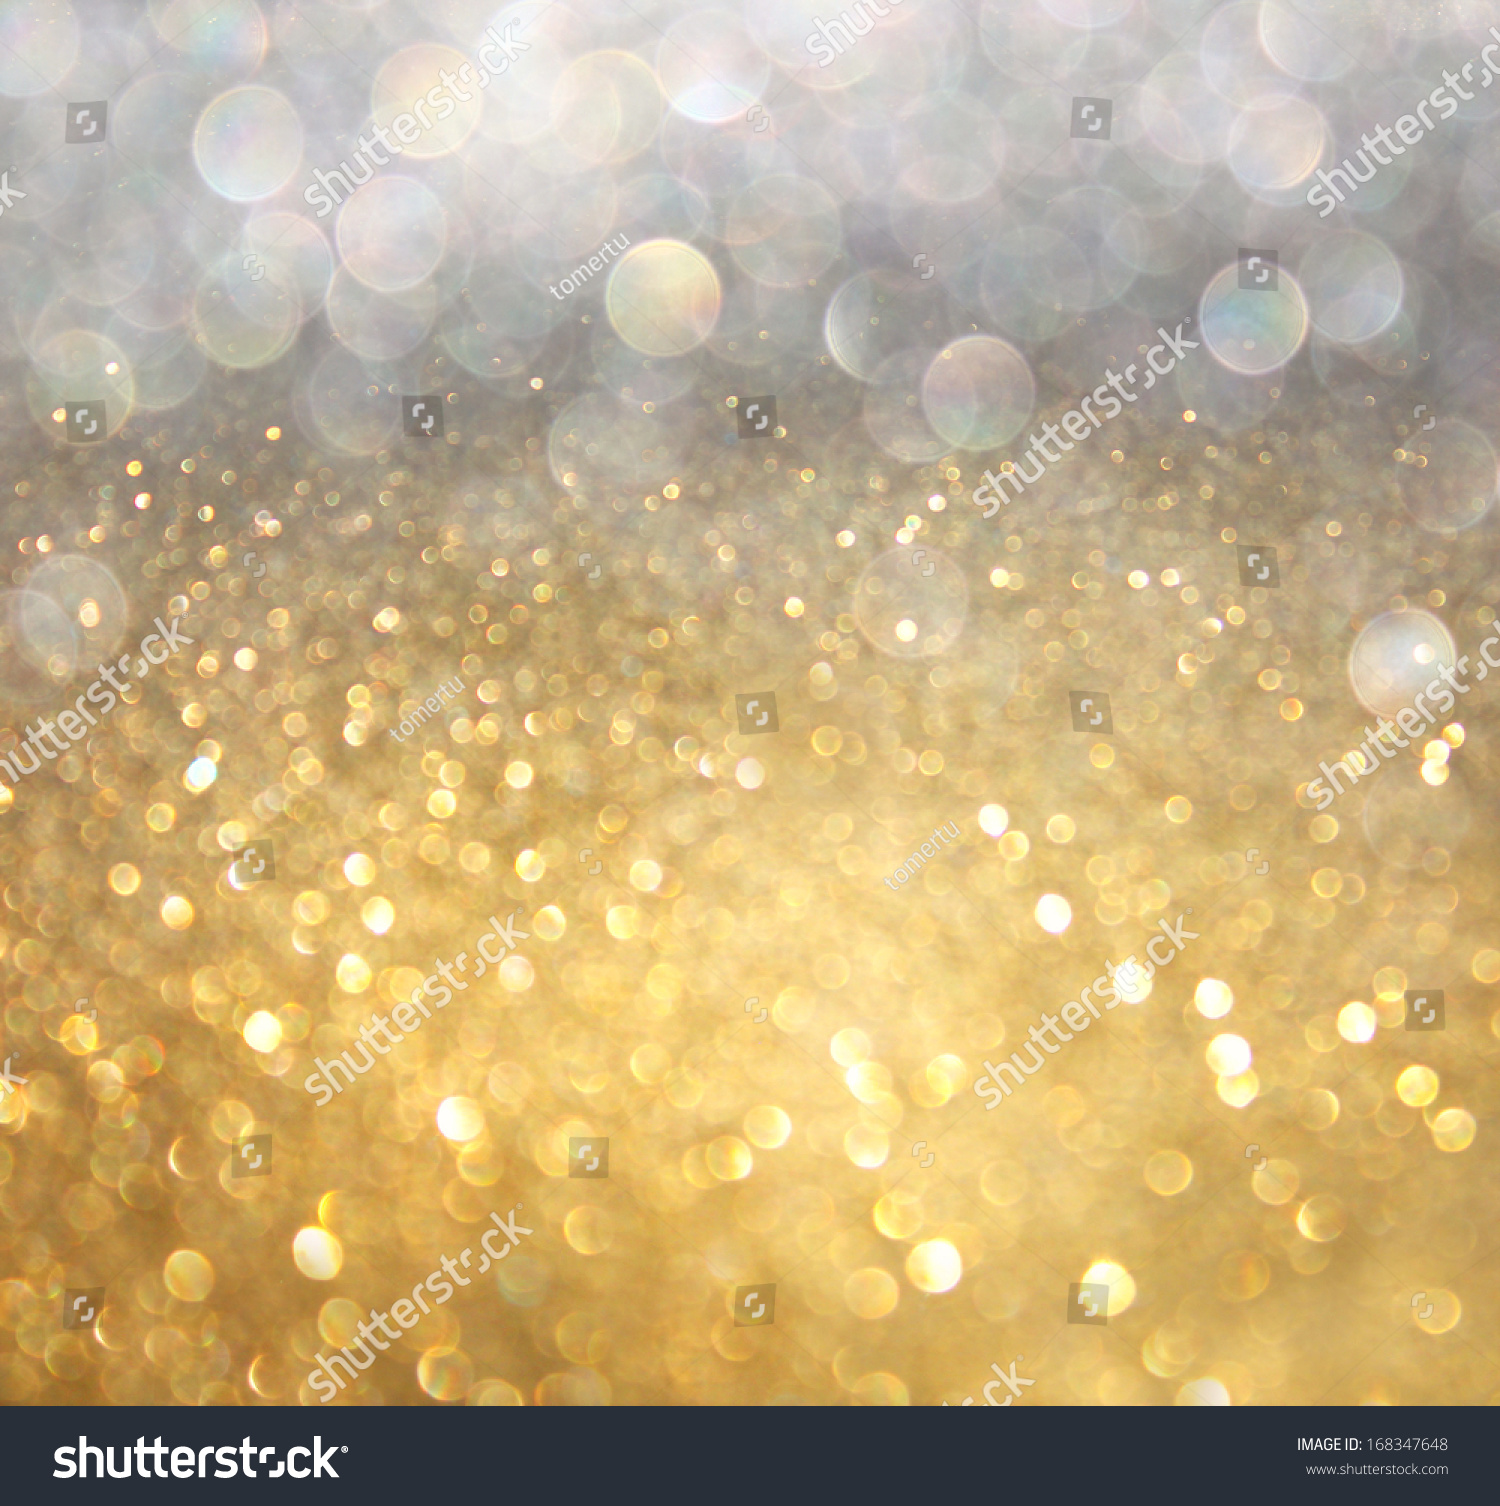 White And Gold Bedroom With Gray Bedding: White Silver Gold Abstract Bokeh Lights Stock Photo